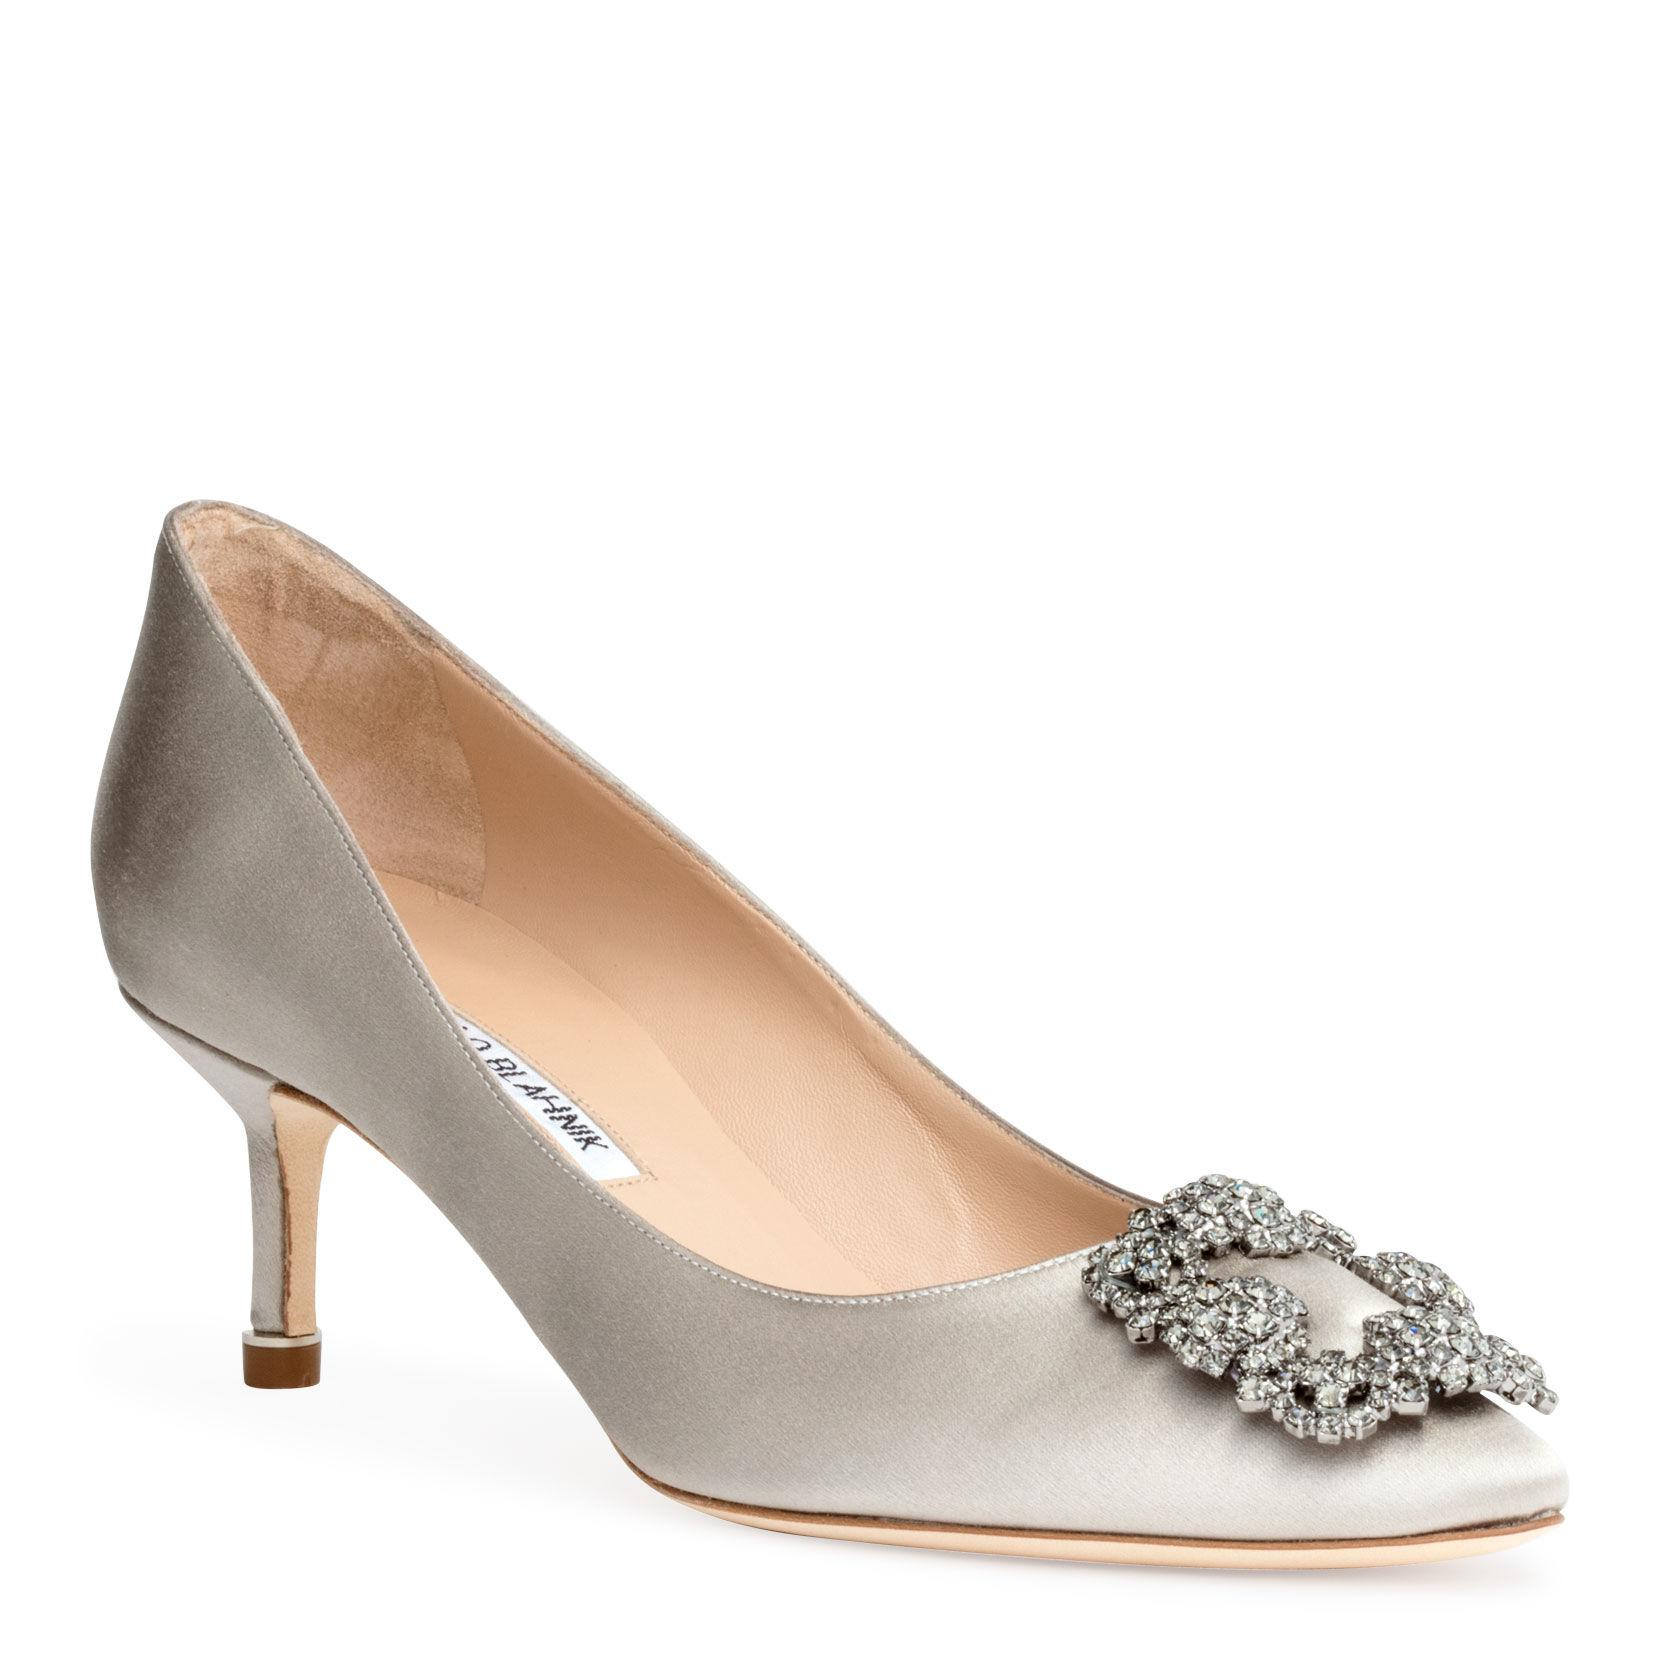 4289f1f4d1c6 Manolo Blahnik. Women s Hangisi 50 Satin Silver Grey Pumps